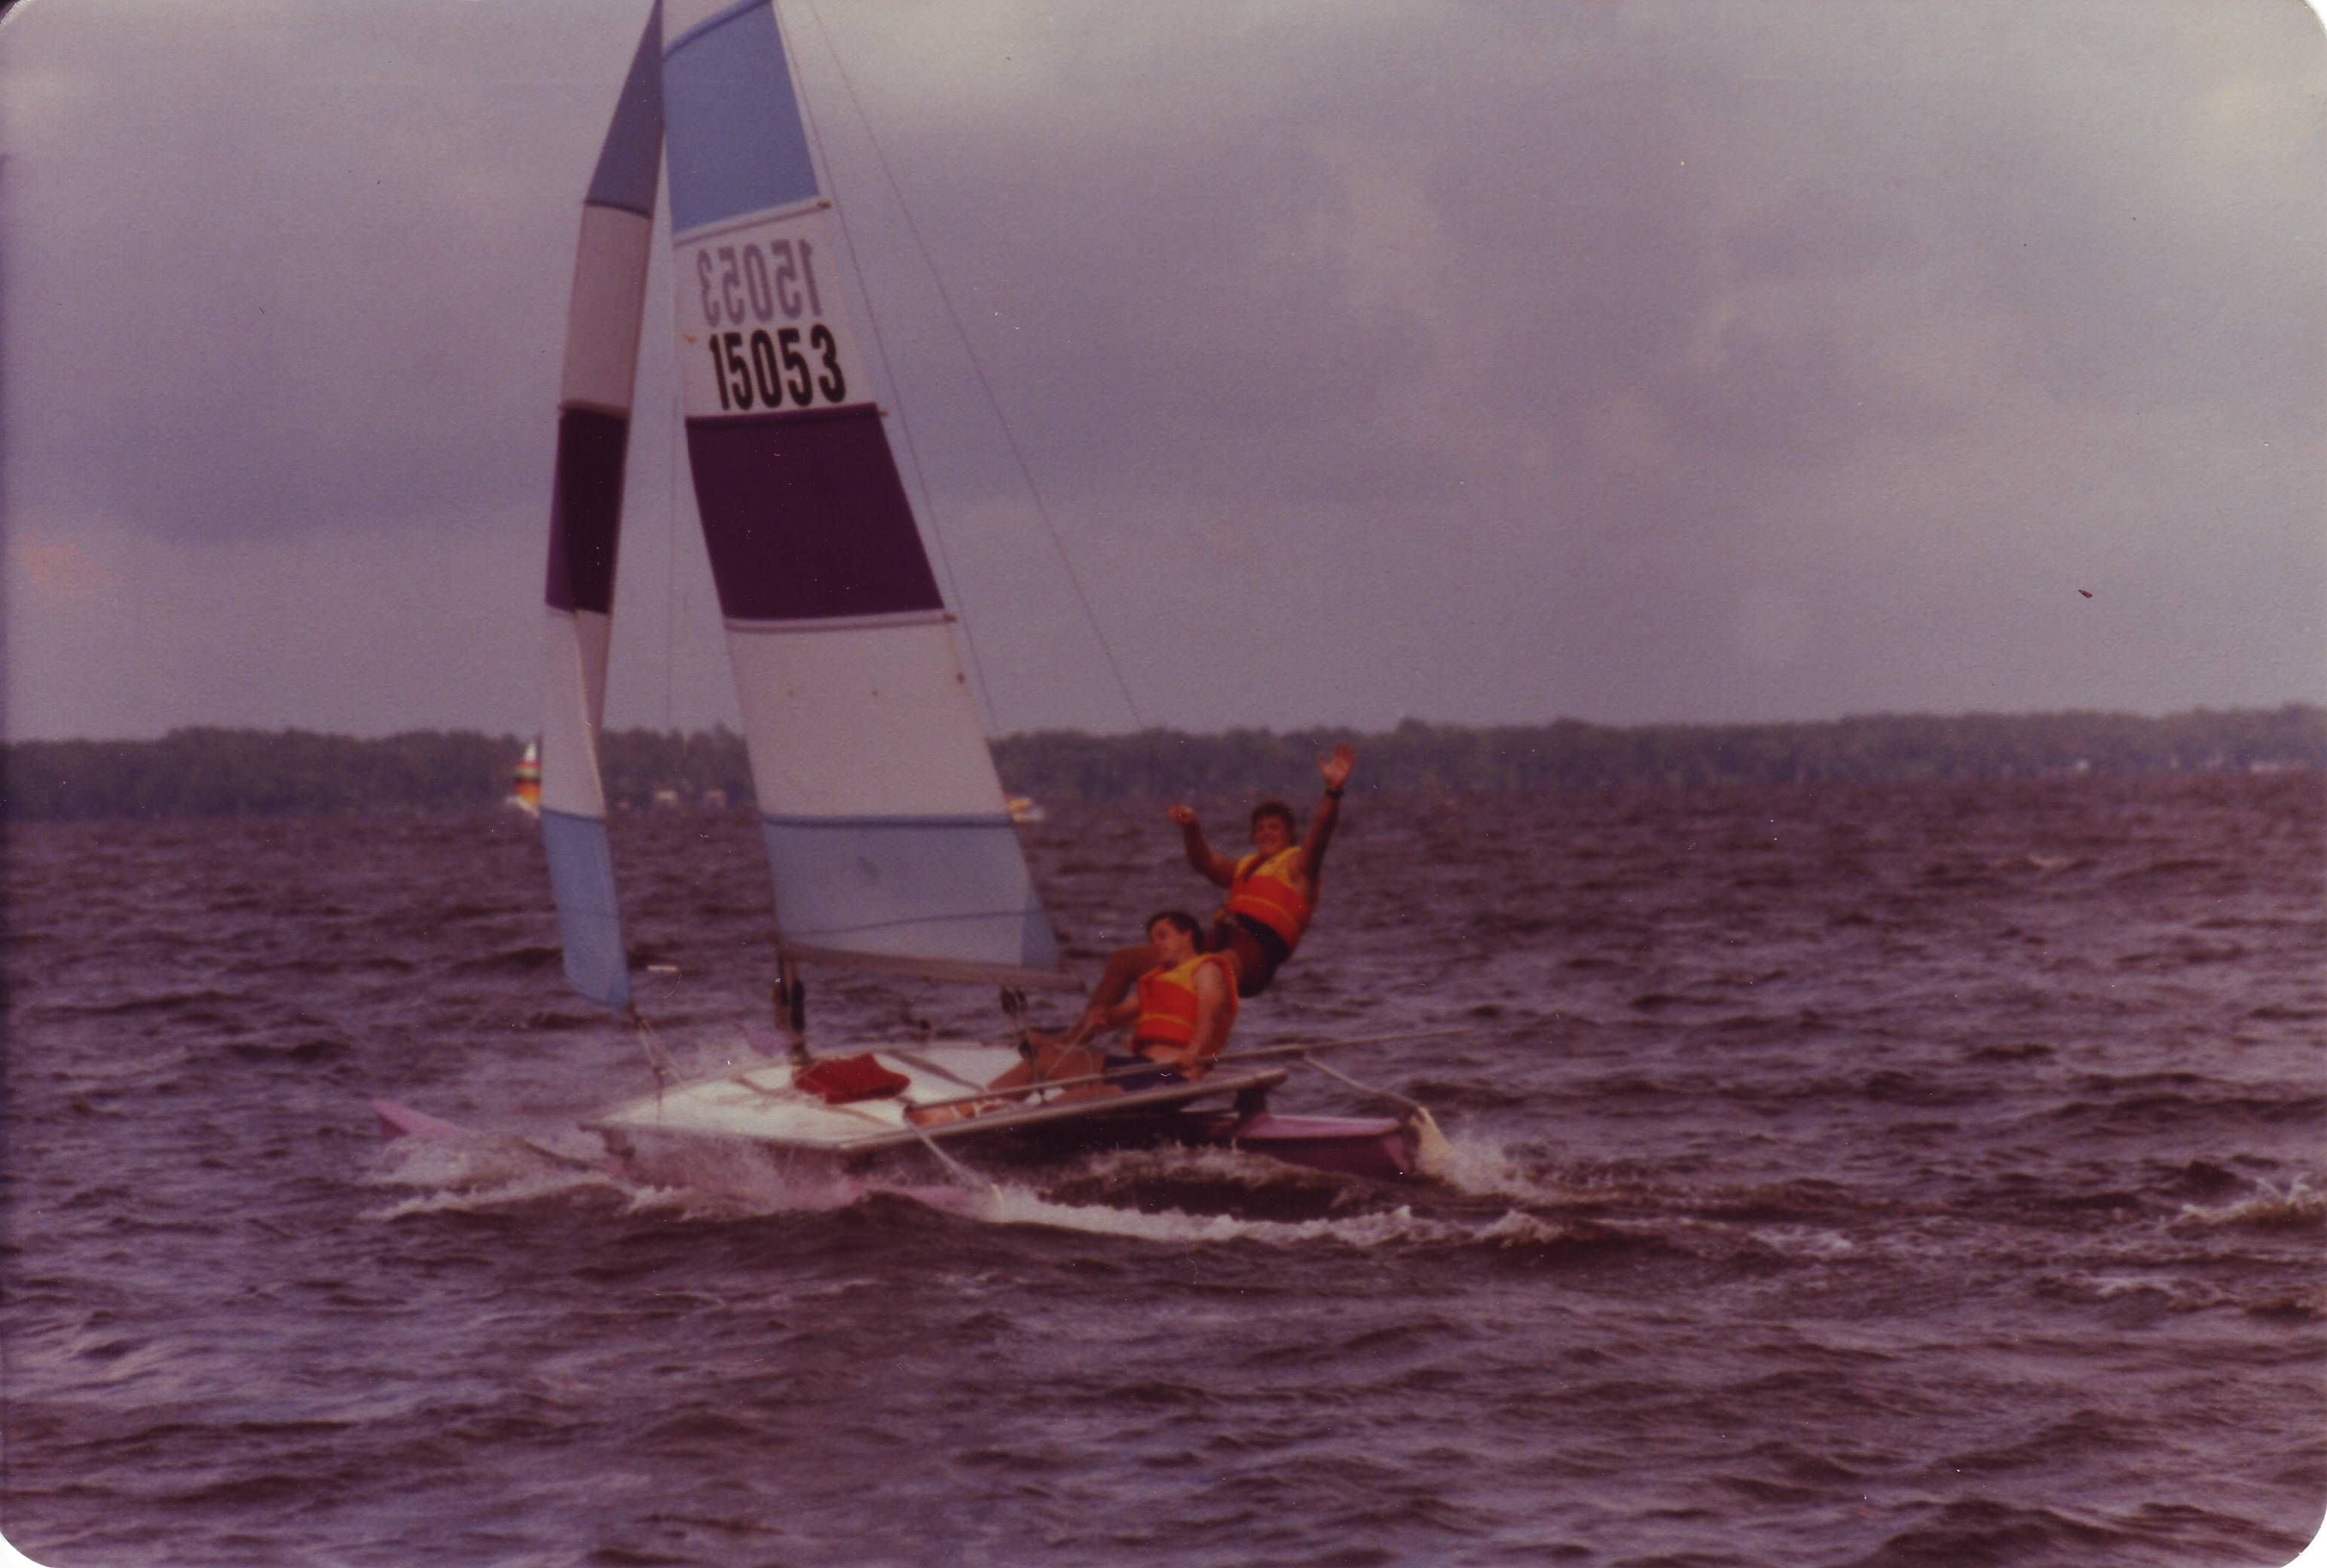 Our Hobie Cat When First Married Catamaran Picture Day Boat City mountains dock sail boat yacht